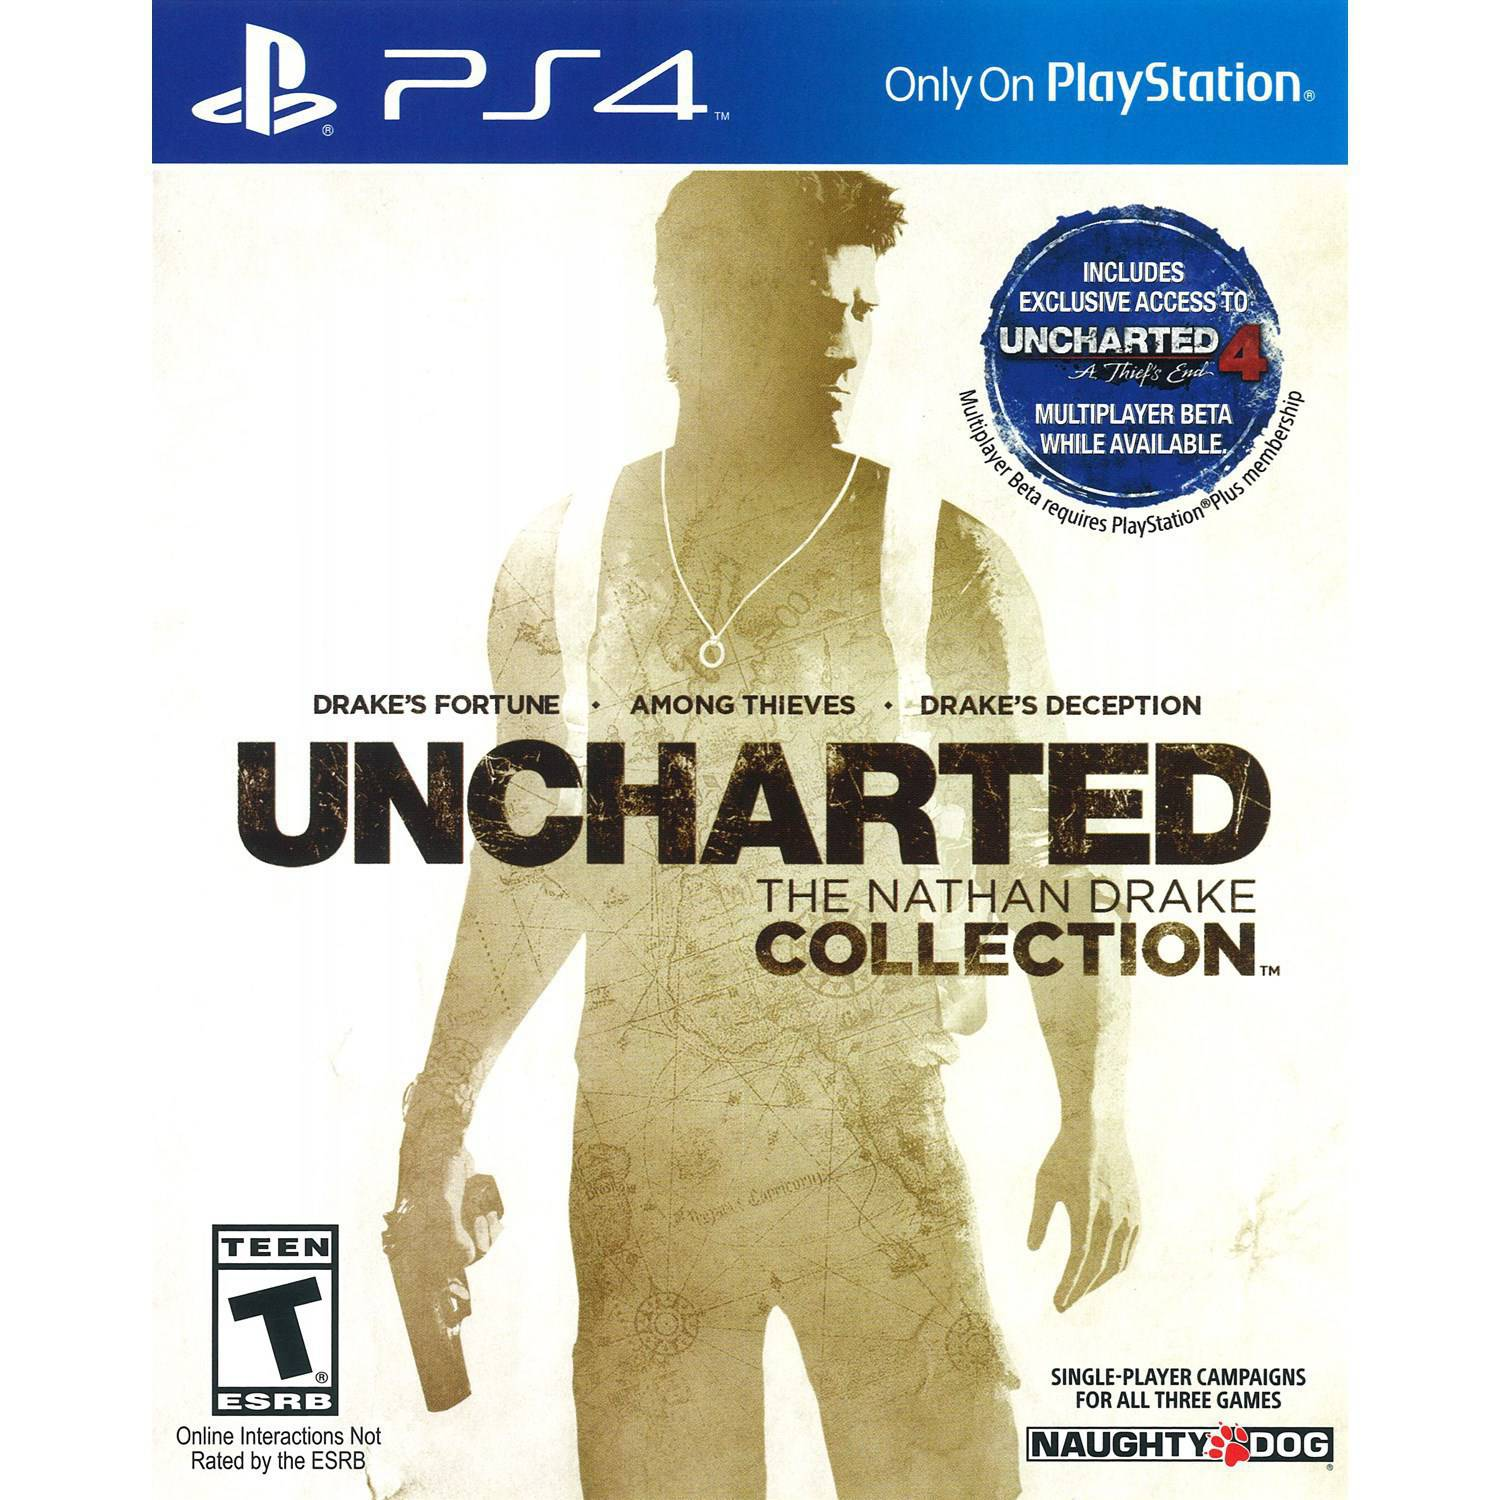 UNCHARTED: The Nathan Drake Collection (Playstation 4) by Naughty Dog